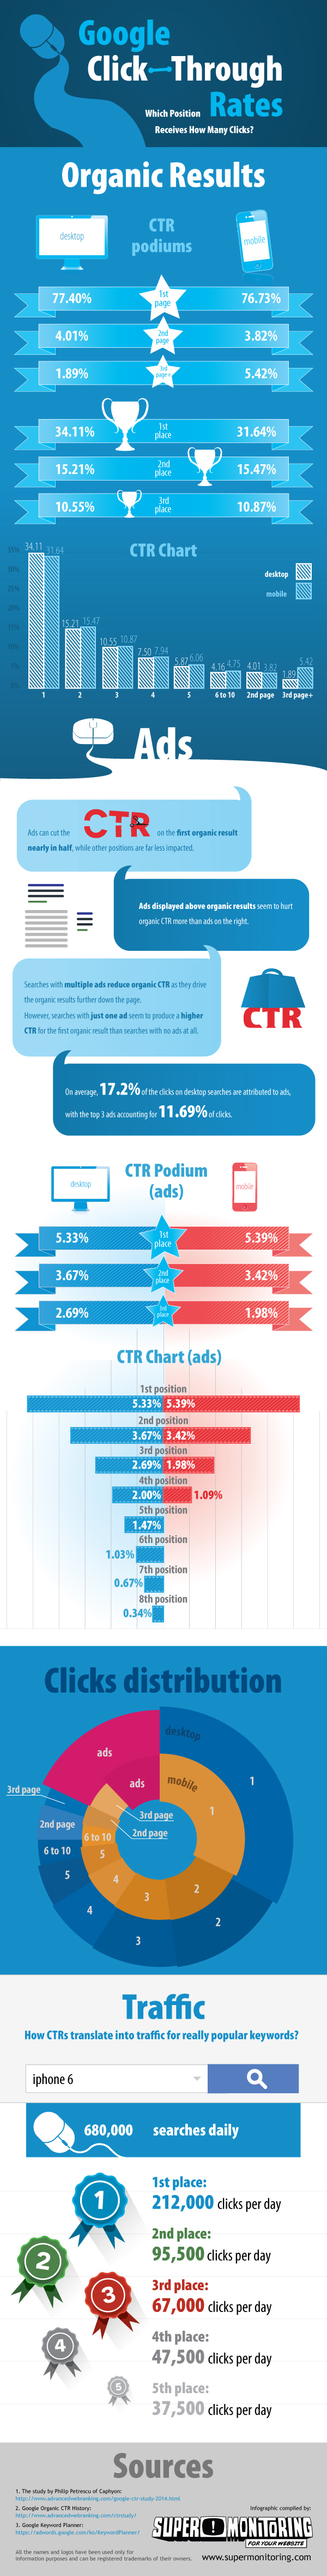 CTR-Click-Through-Rate